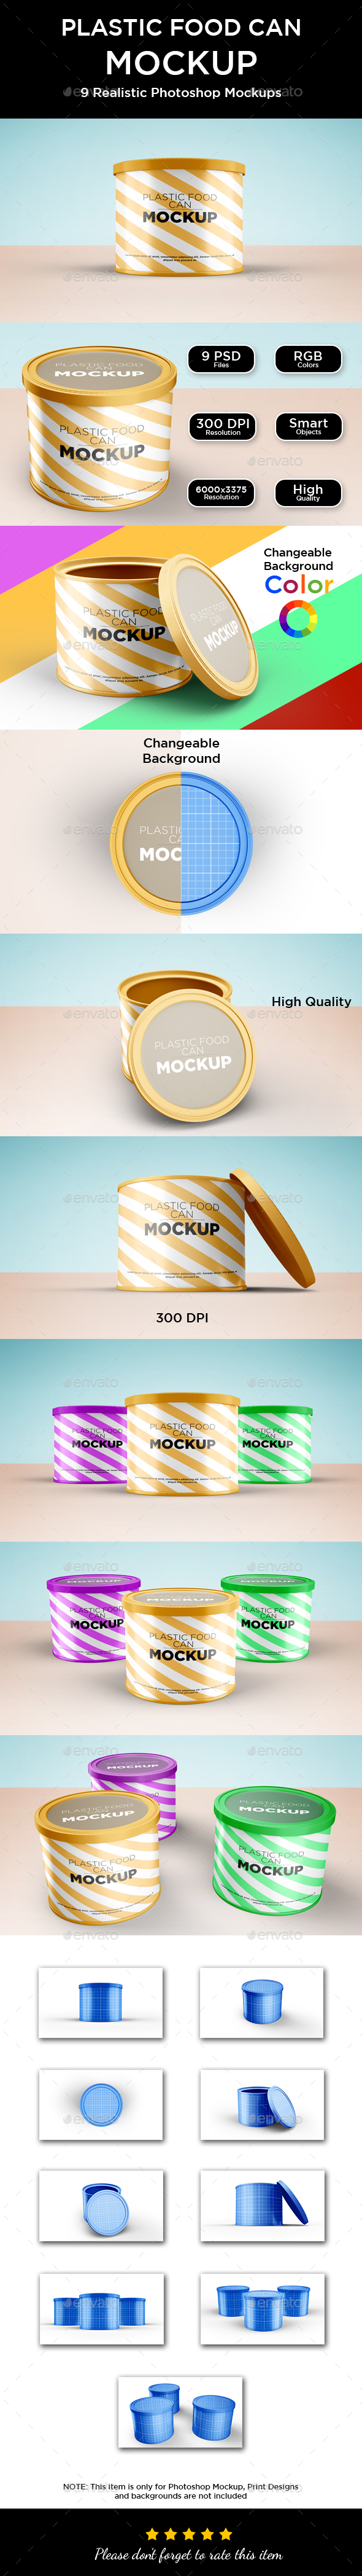 Plastic Food Can Mockup - Food and Drink Packaging